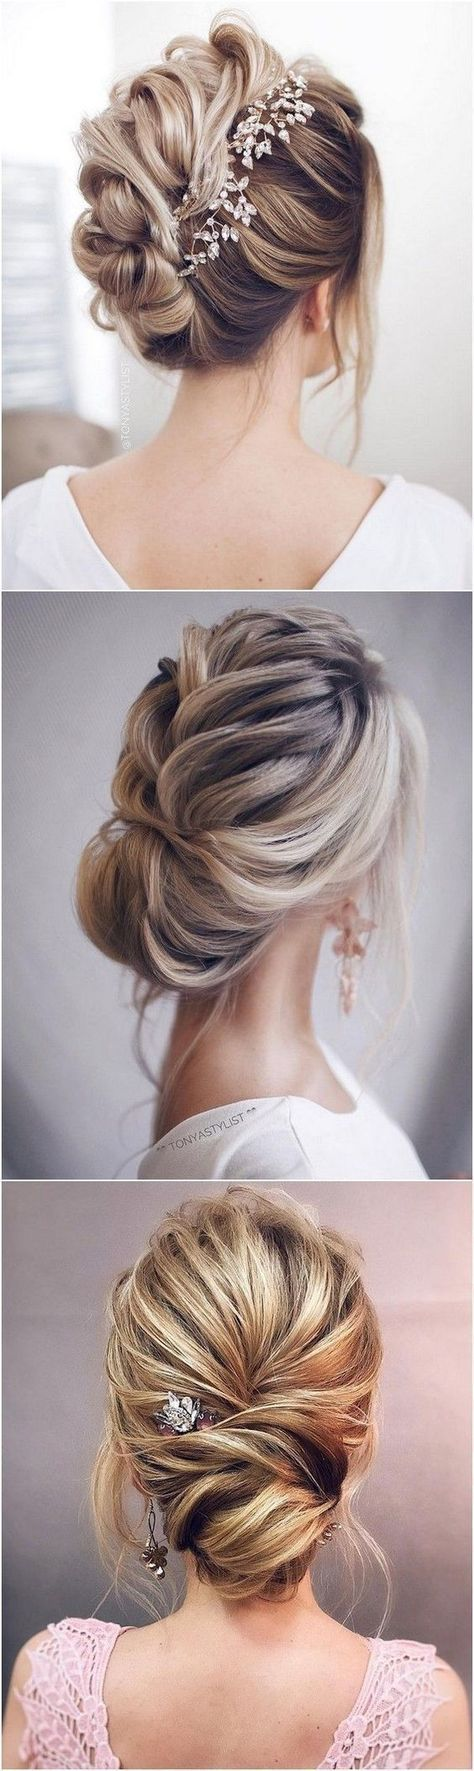 Idée coiffure description elegant updo wedding hairstyles wedding